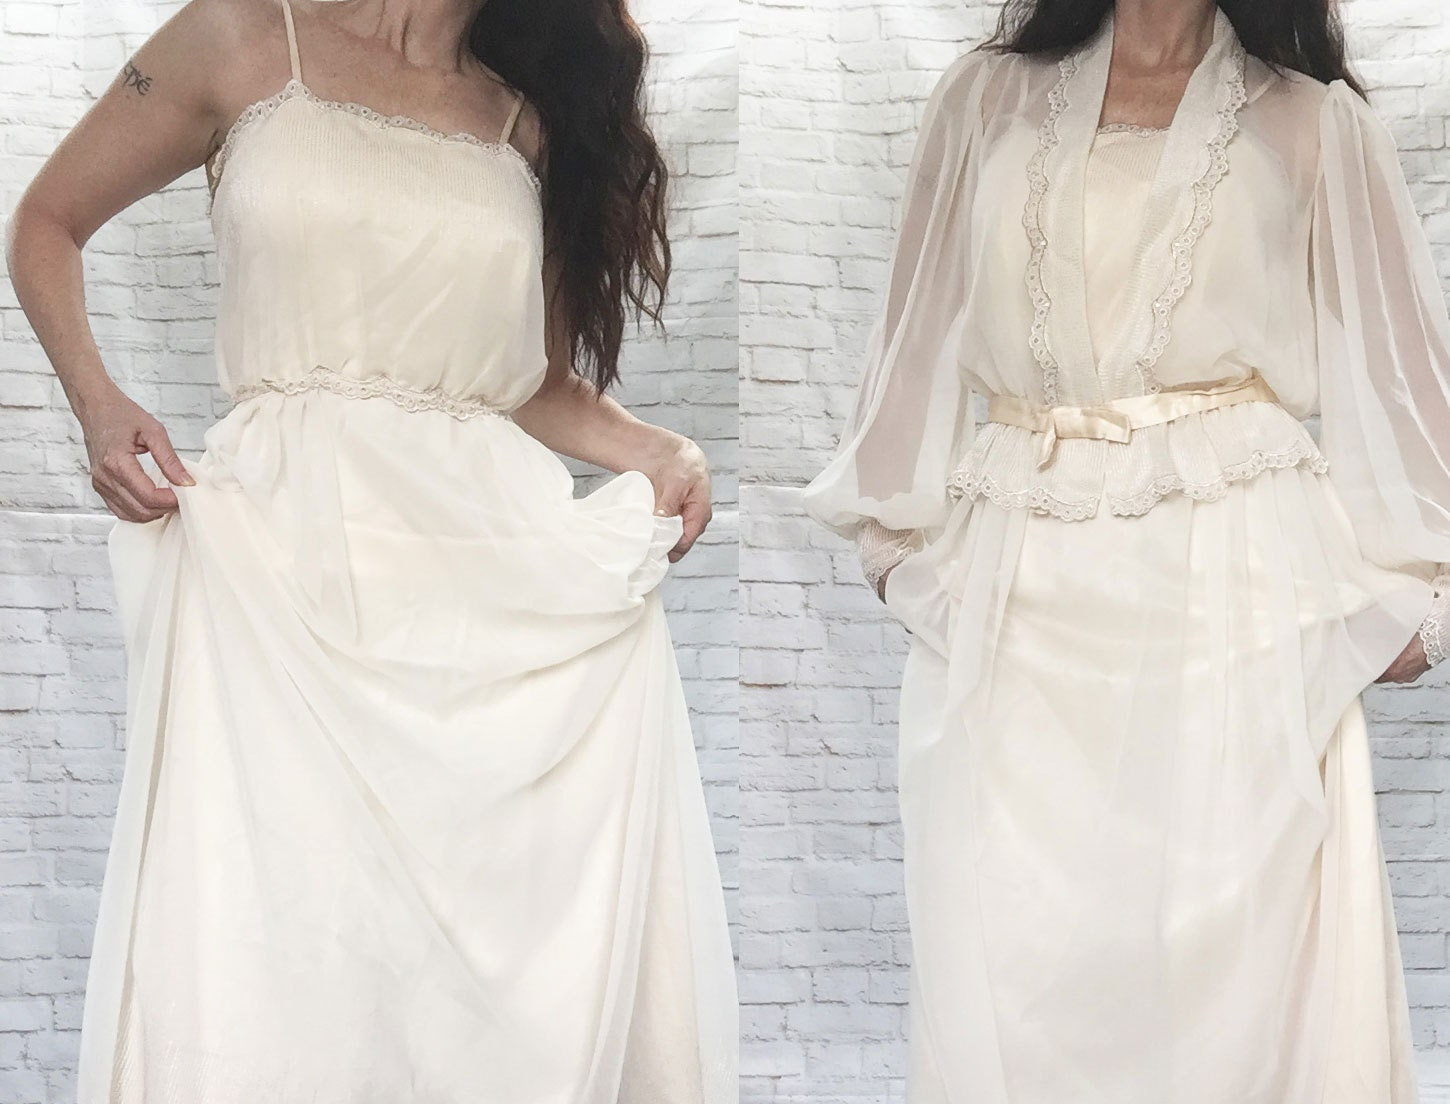 Vintage 70s Does Victorian Edwardian Wedding Dress Set S Sheer Top Cream Lace Embroidered Chiffon